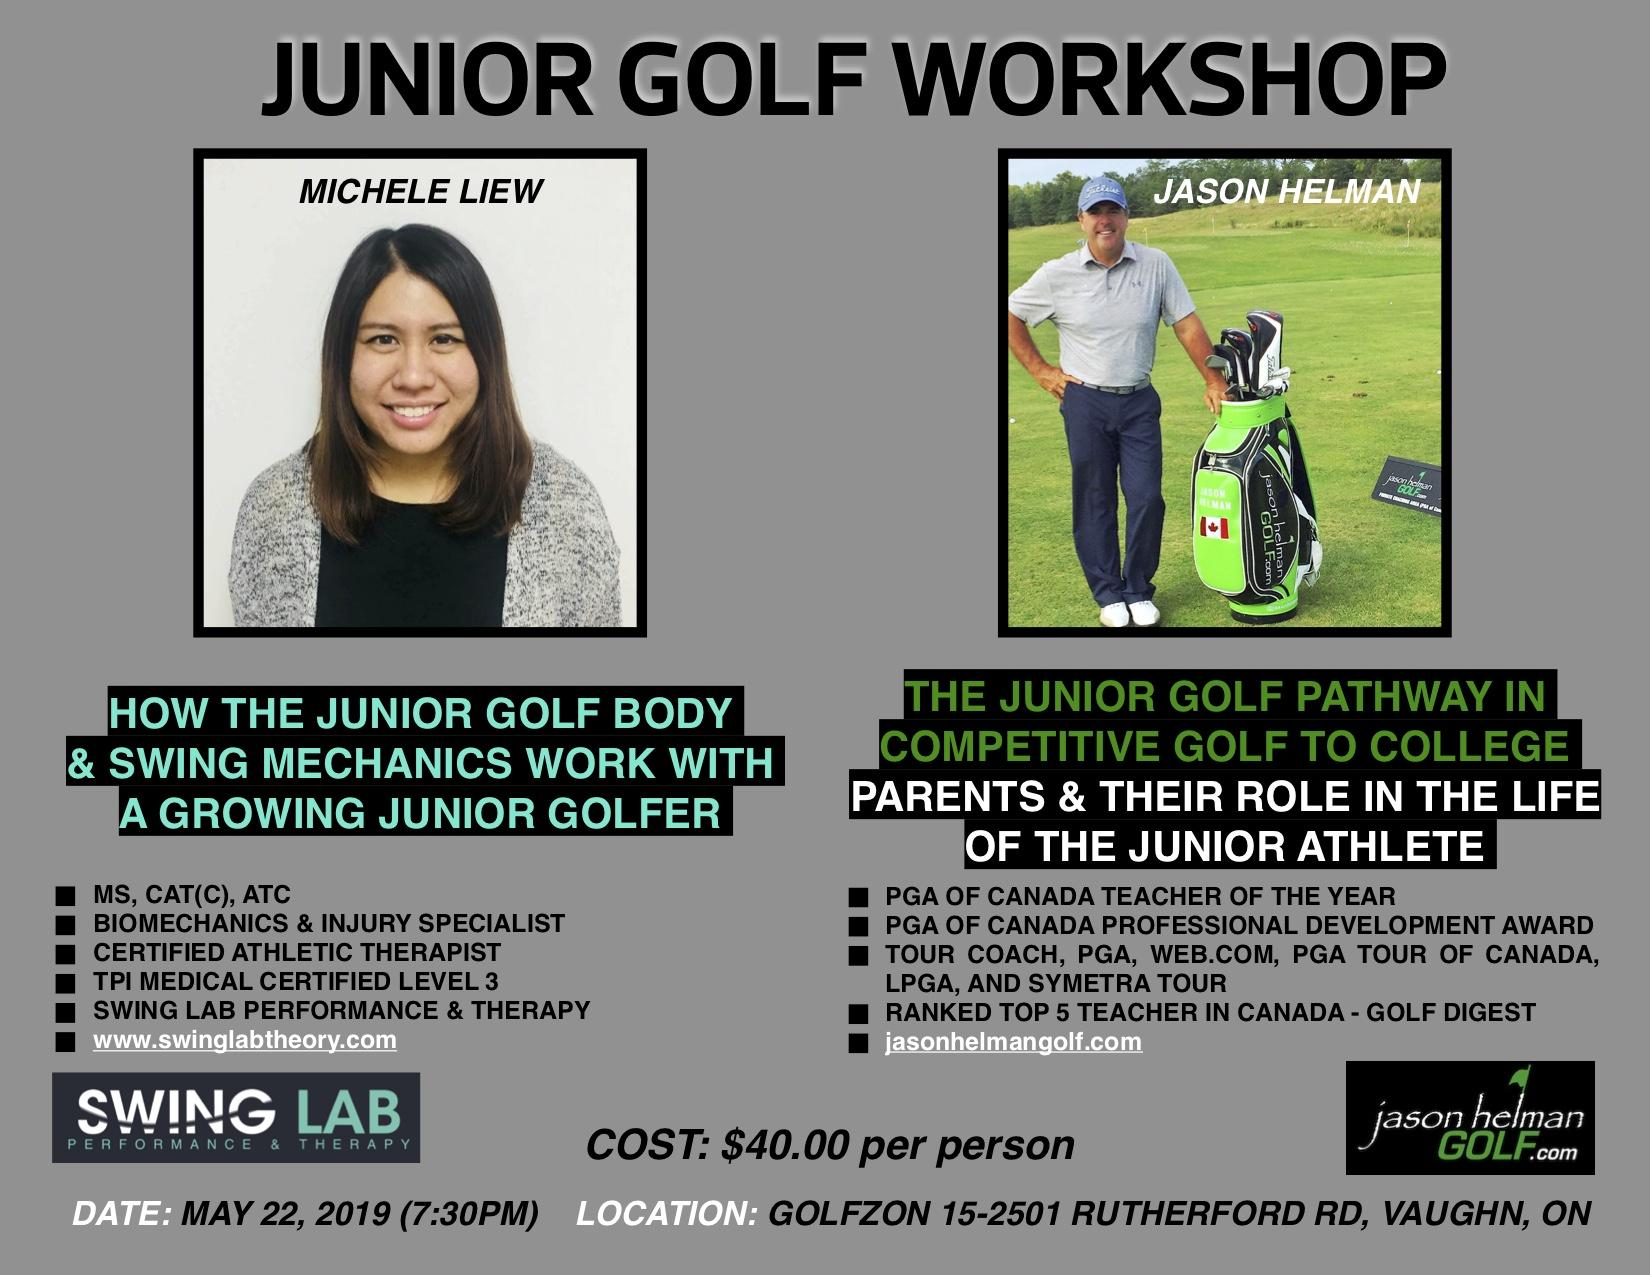 The Junior Golf Pathway in Competitive to College Golf